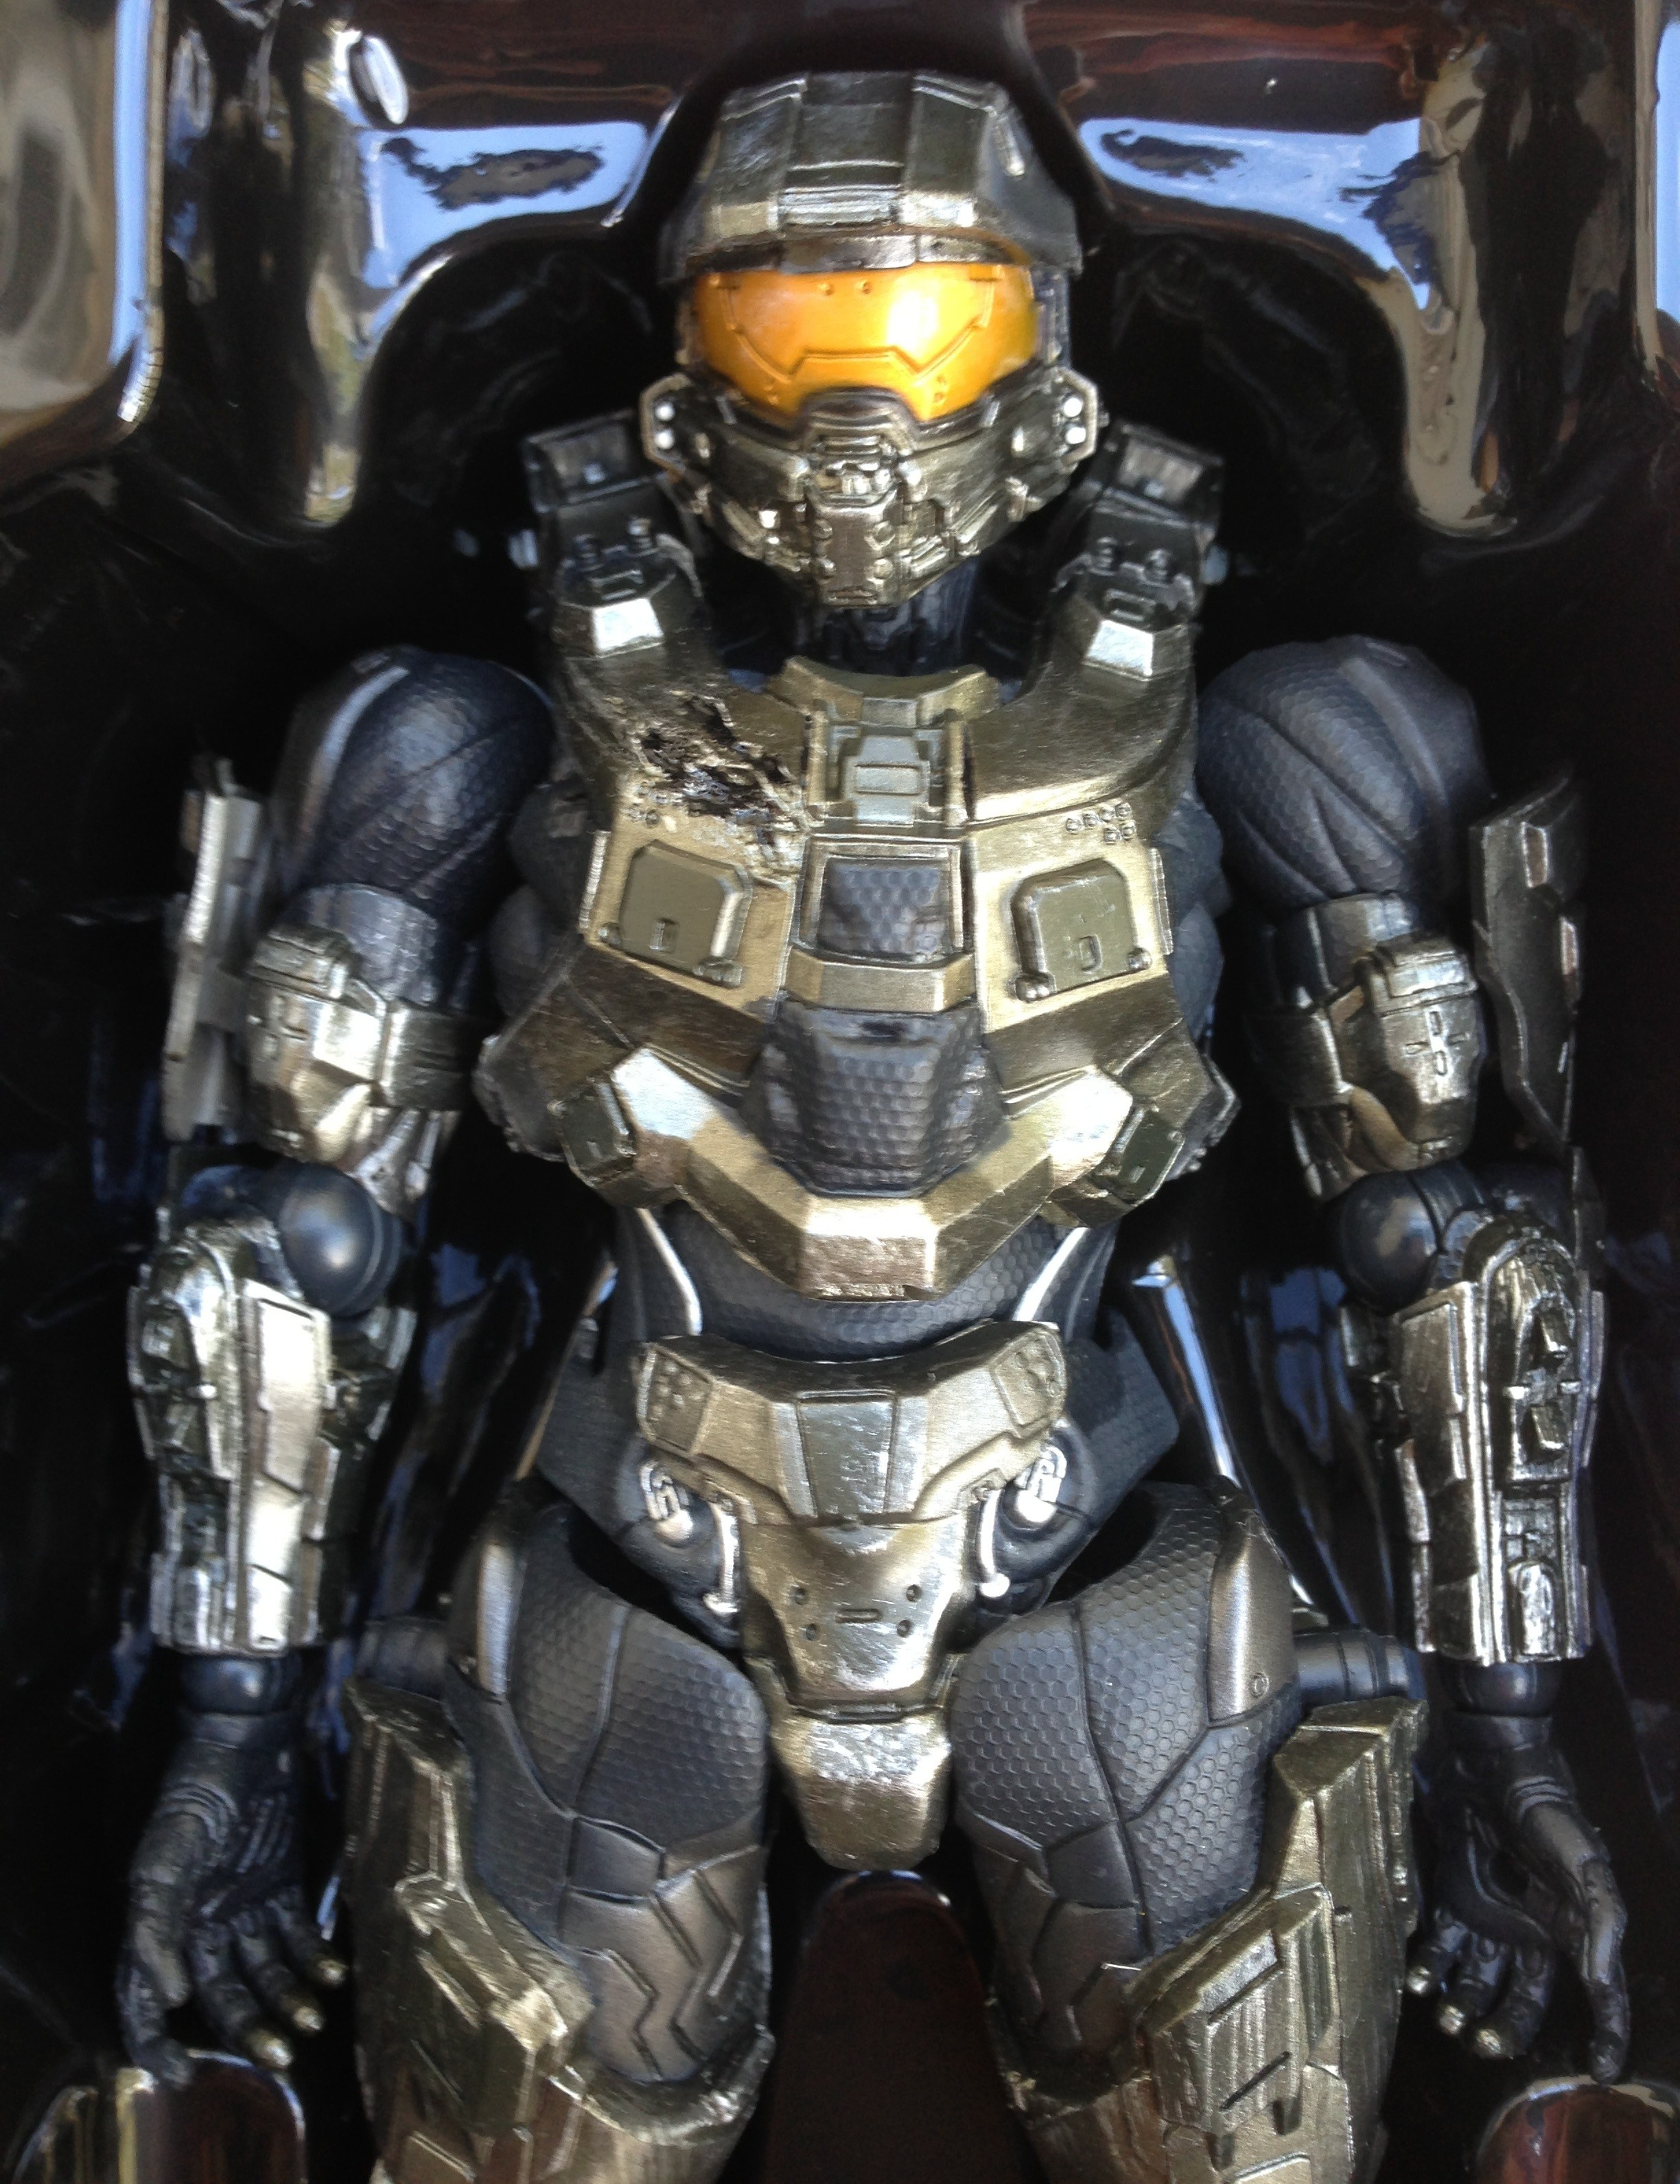 Halo 4 master chief play arts figure unboxing photos - Halo 4 photos ...